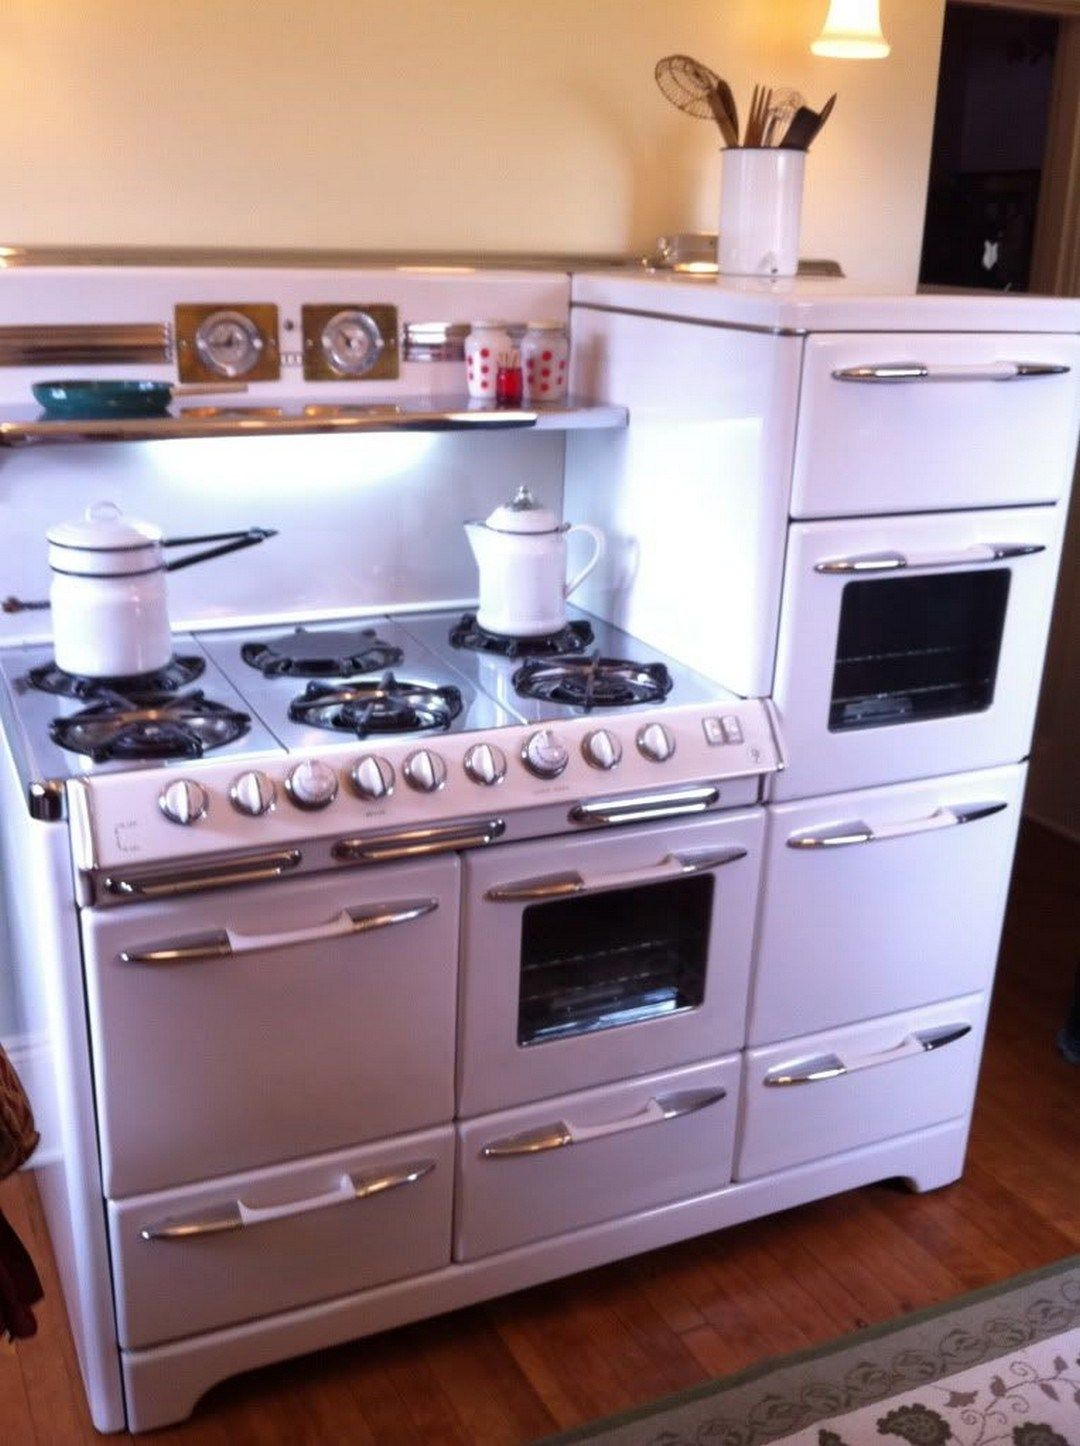 Vintage Style Kitchen Appliance Product And Design 9 Vintage Kitchen Appliances Vintage Stoves Retro Kitchen